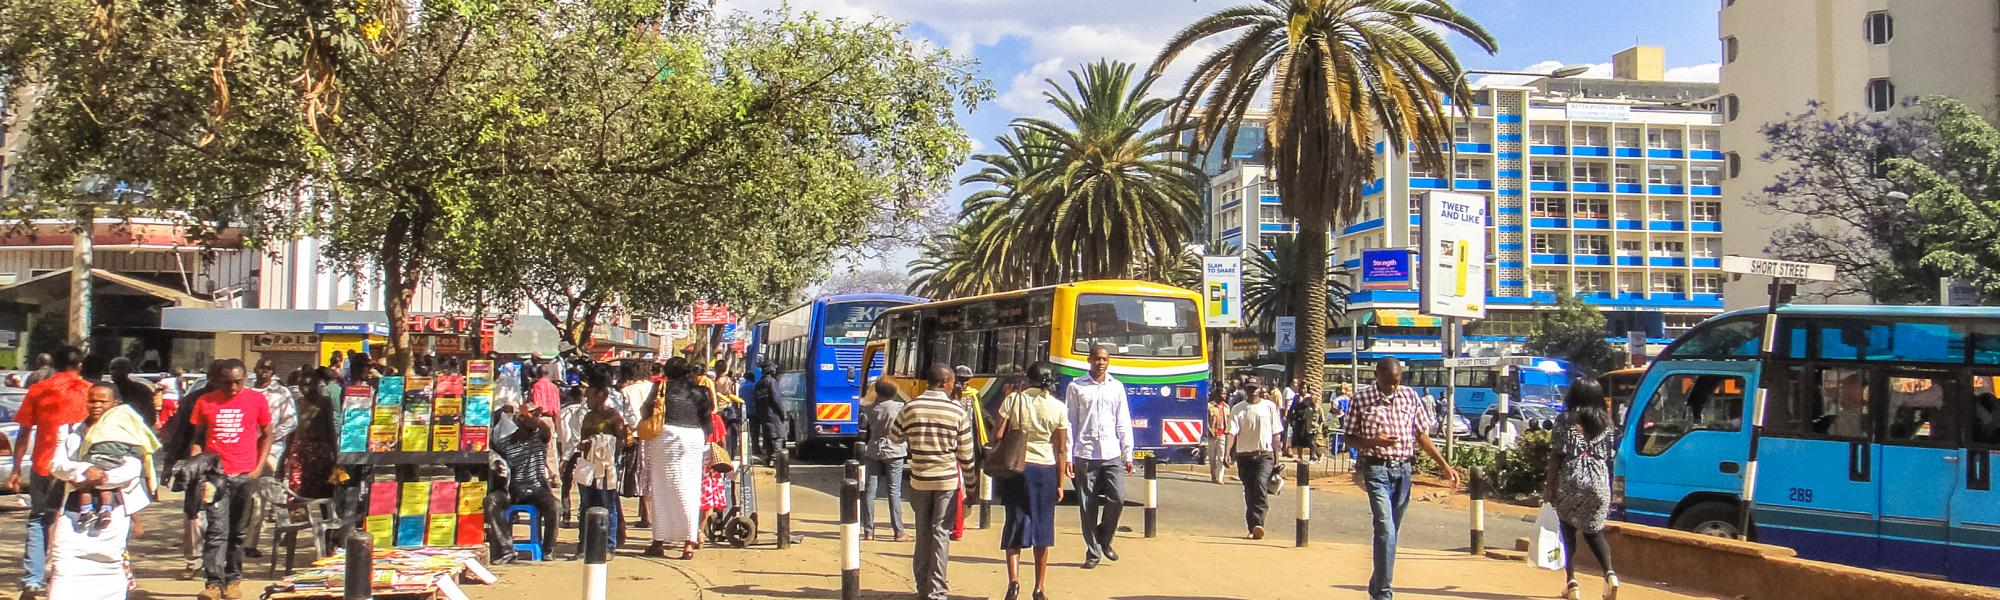 buses in central Nairobi Kenya with people